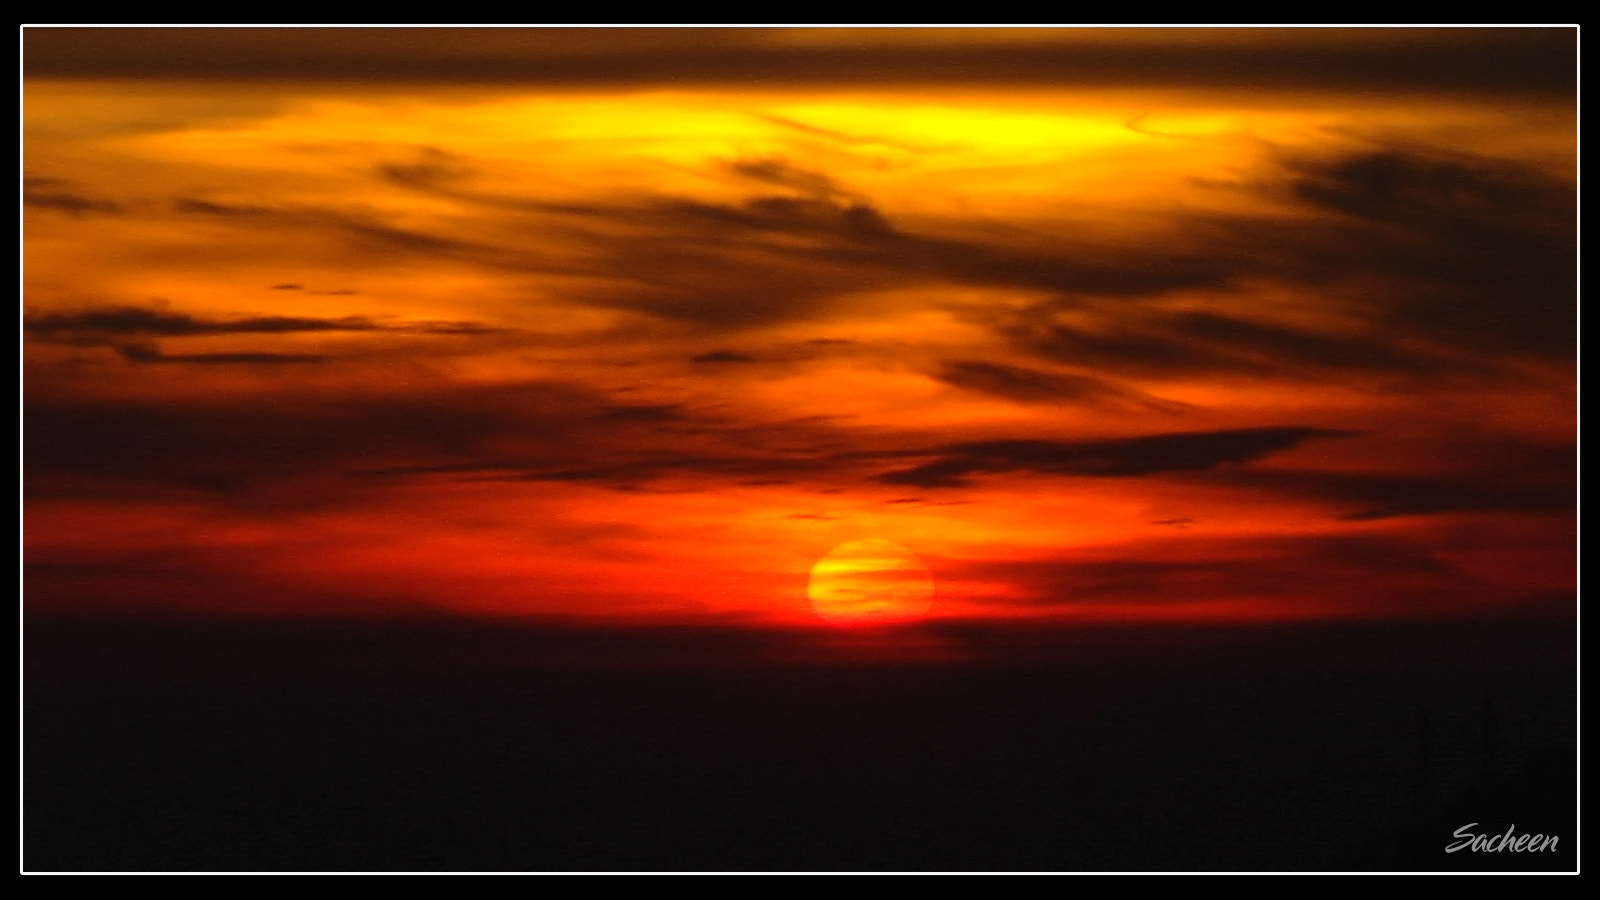 Photograph sunset by Sacheen Vaidya on 500px